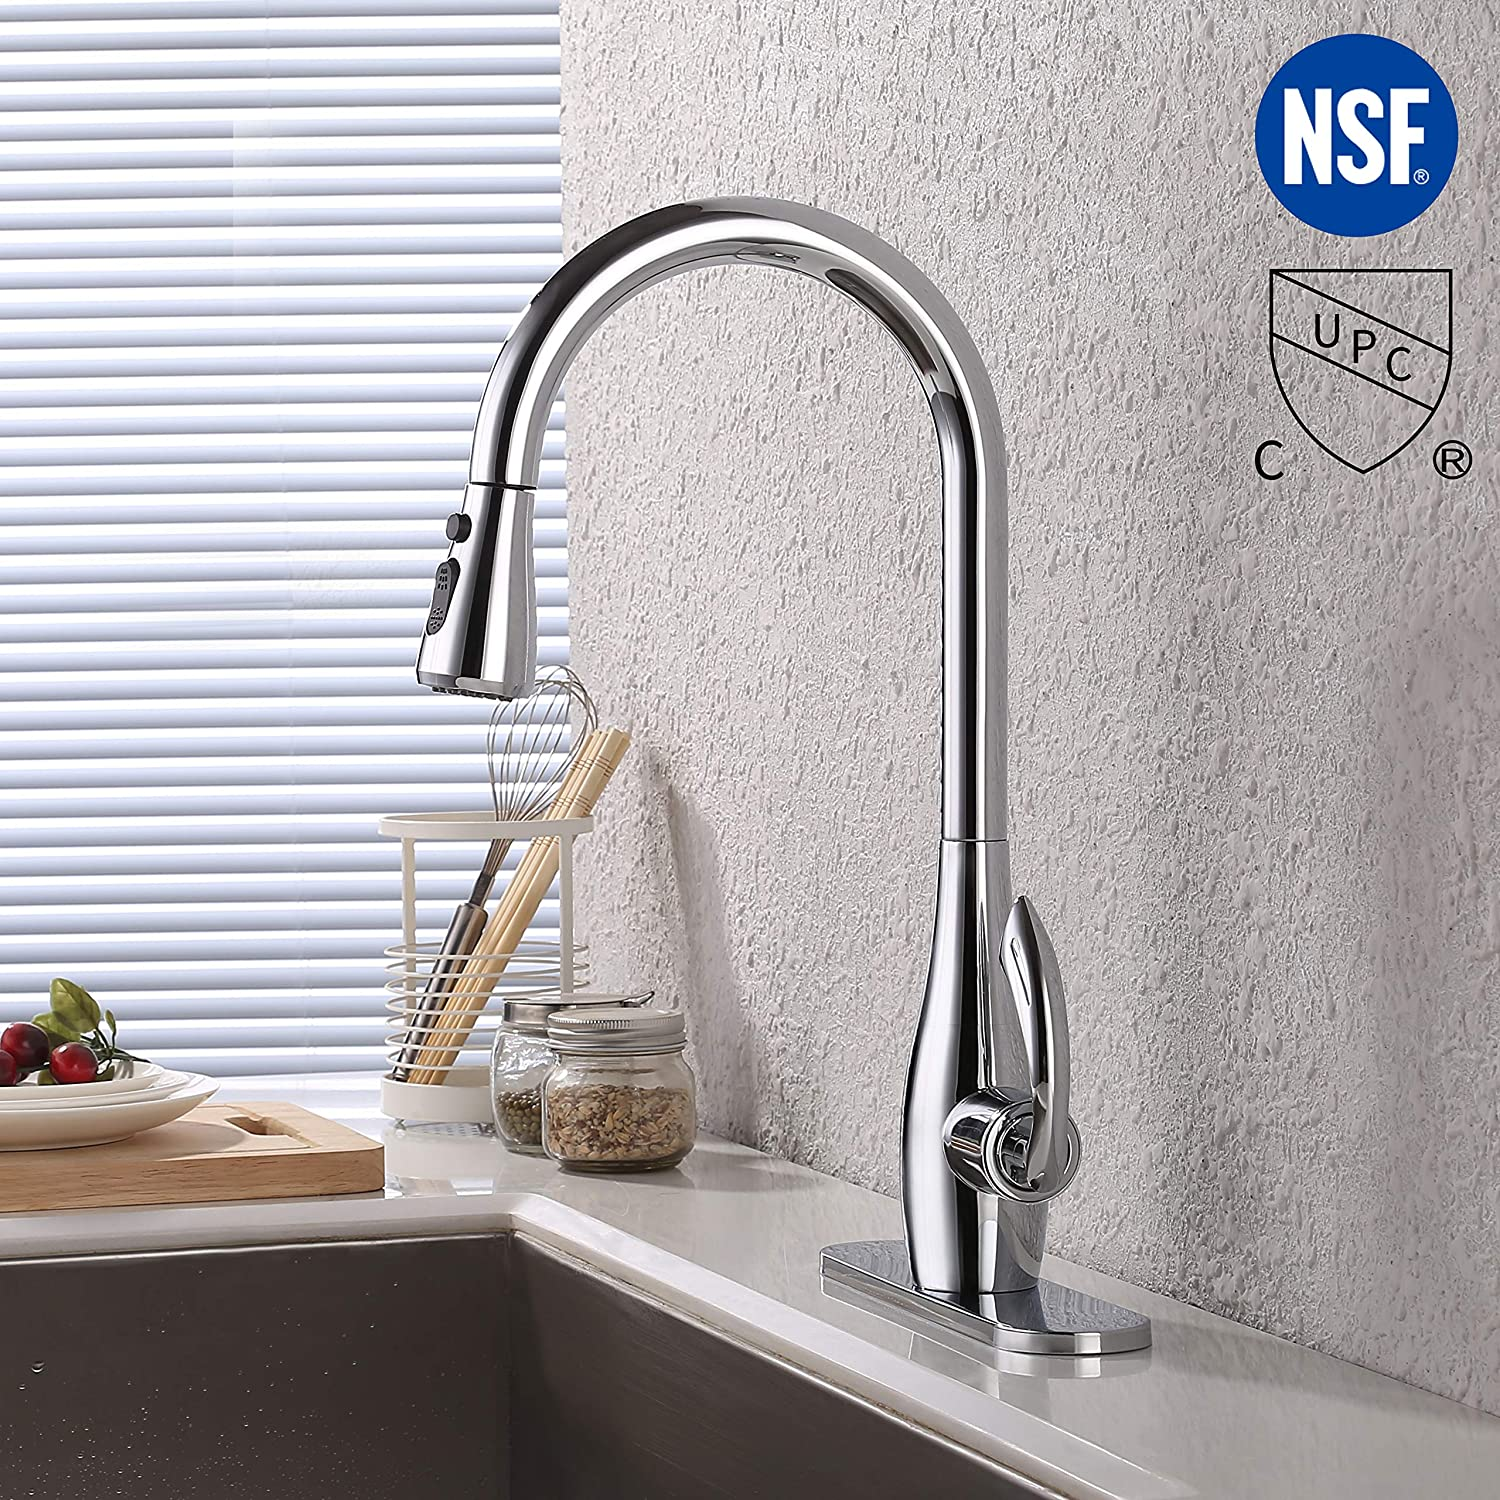 Titanium Gold L6938LF-PG KES Sanitary Ware KES cUPC NSF Certified BRASS Singel Handle Pull Down Kitchen Faucet with Retractable Pull Out Wand High Arc Swivel Spout